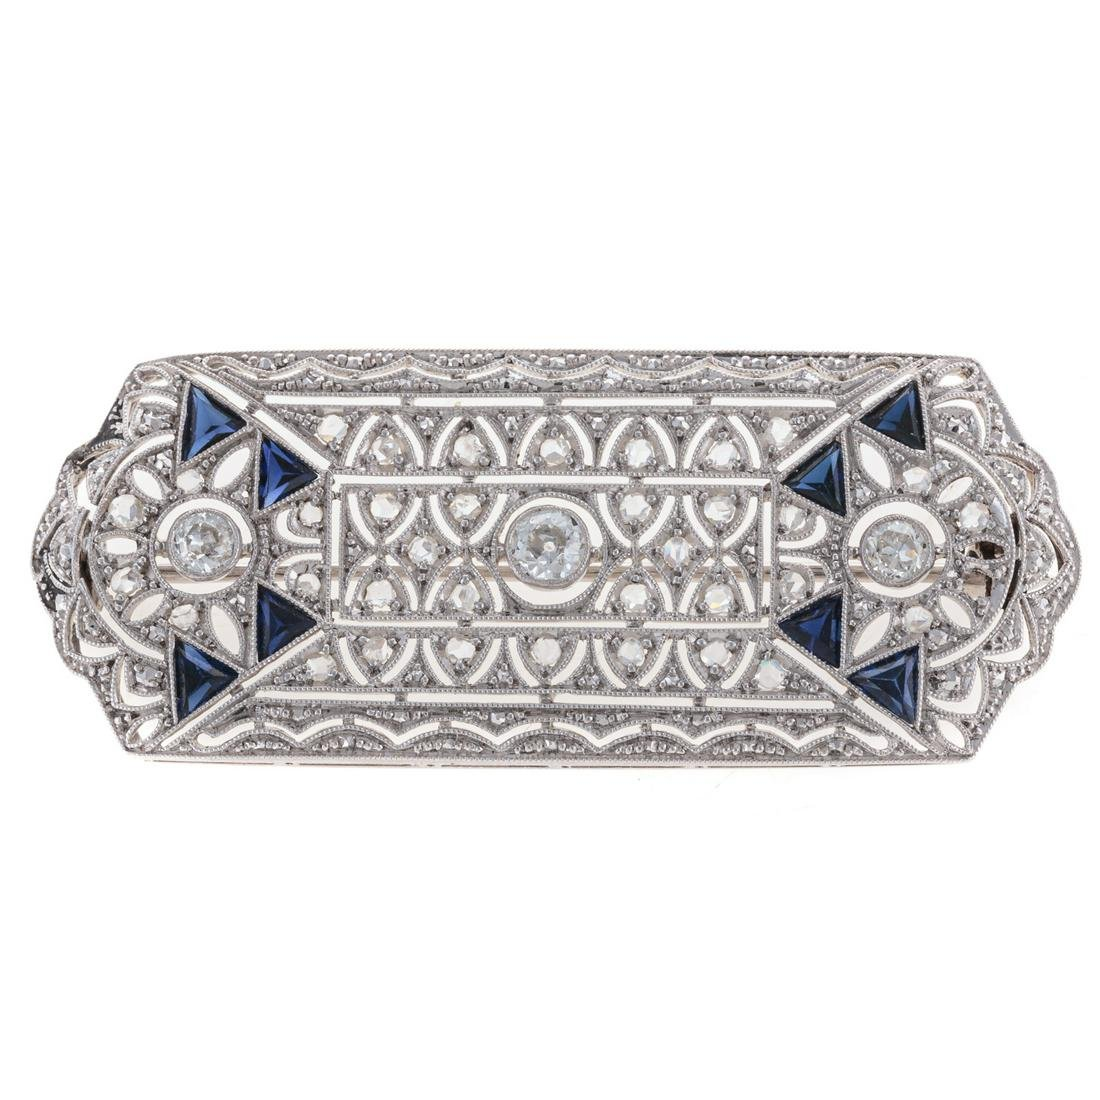 A Filigree Diamond & Sapphire Bar Pin in Platinum